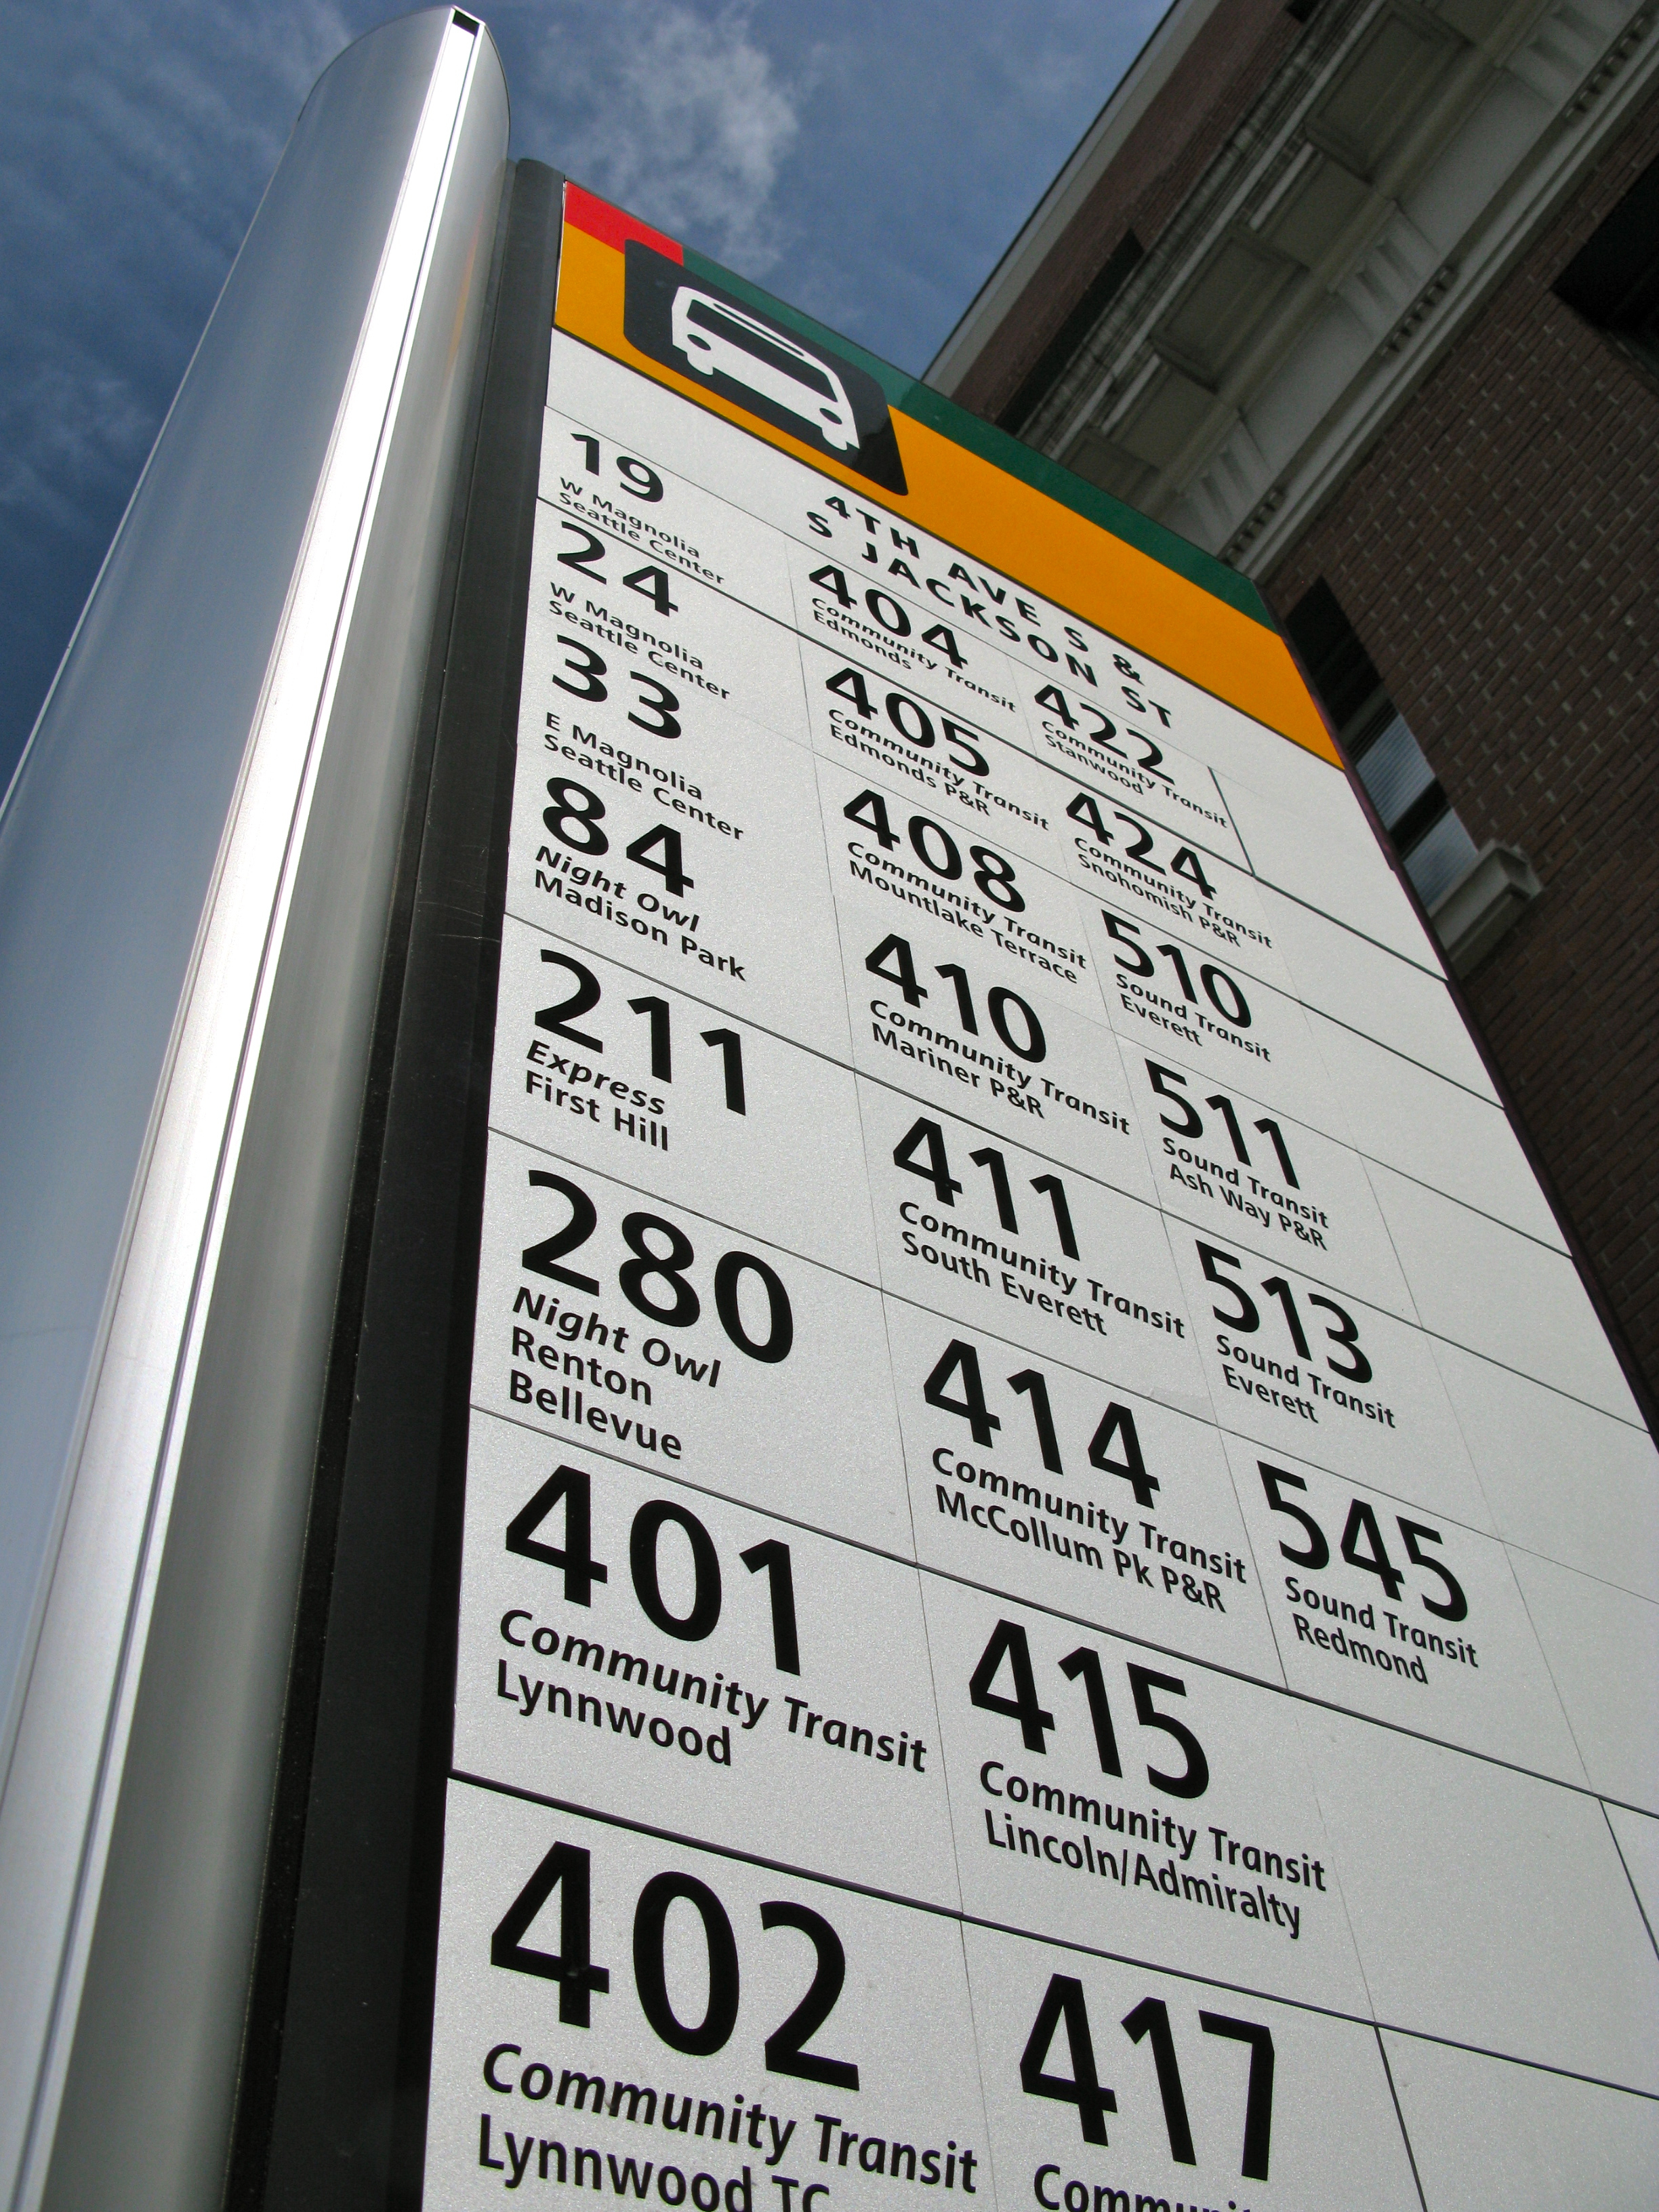 File:King County Metro bus stop sign jpg - Wikimedia Commons